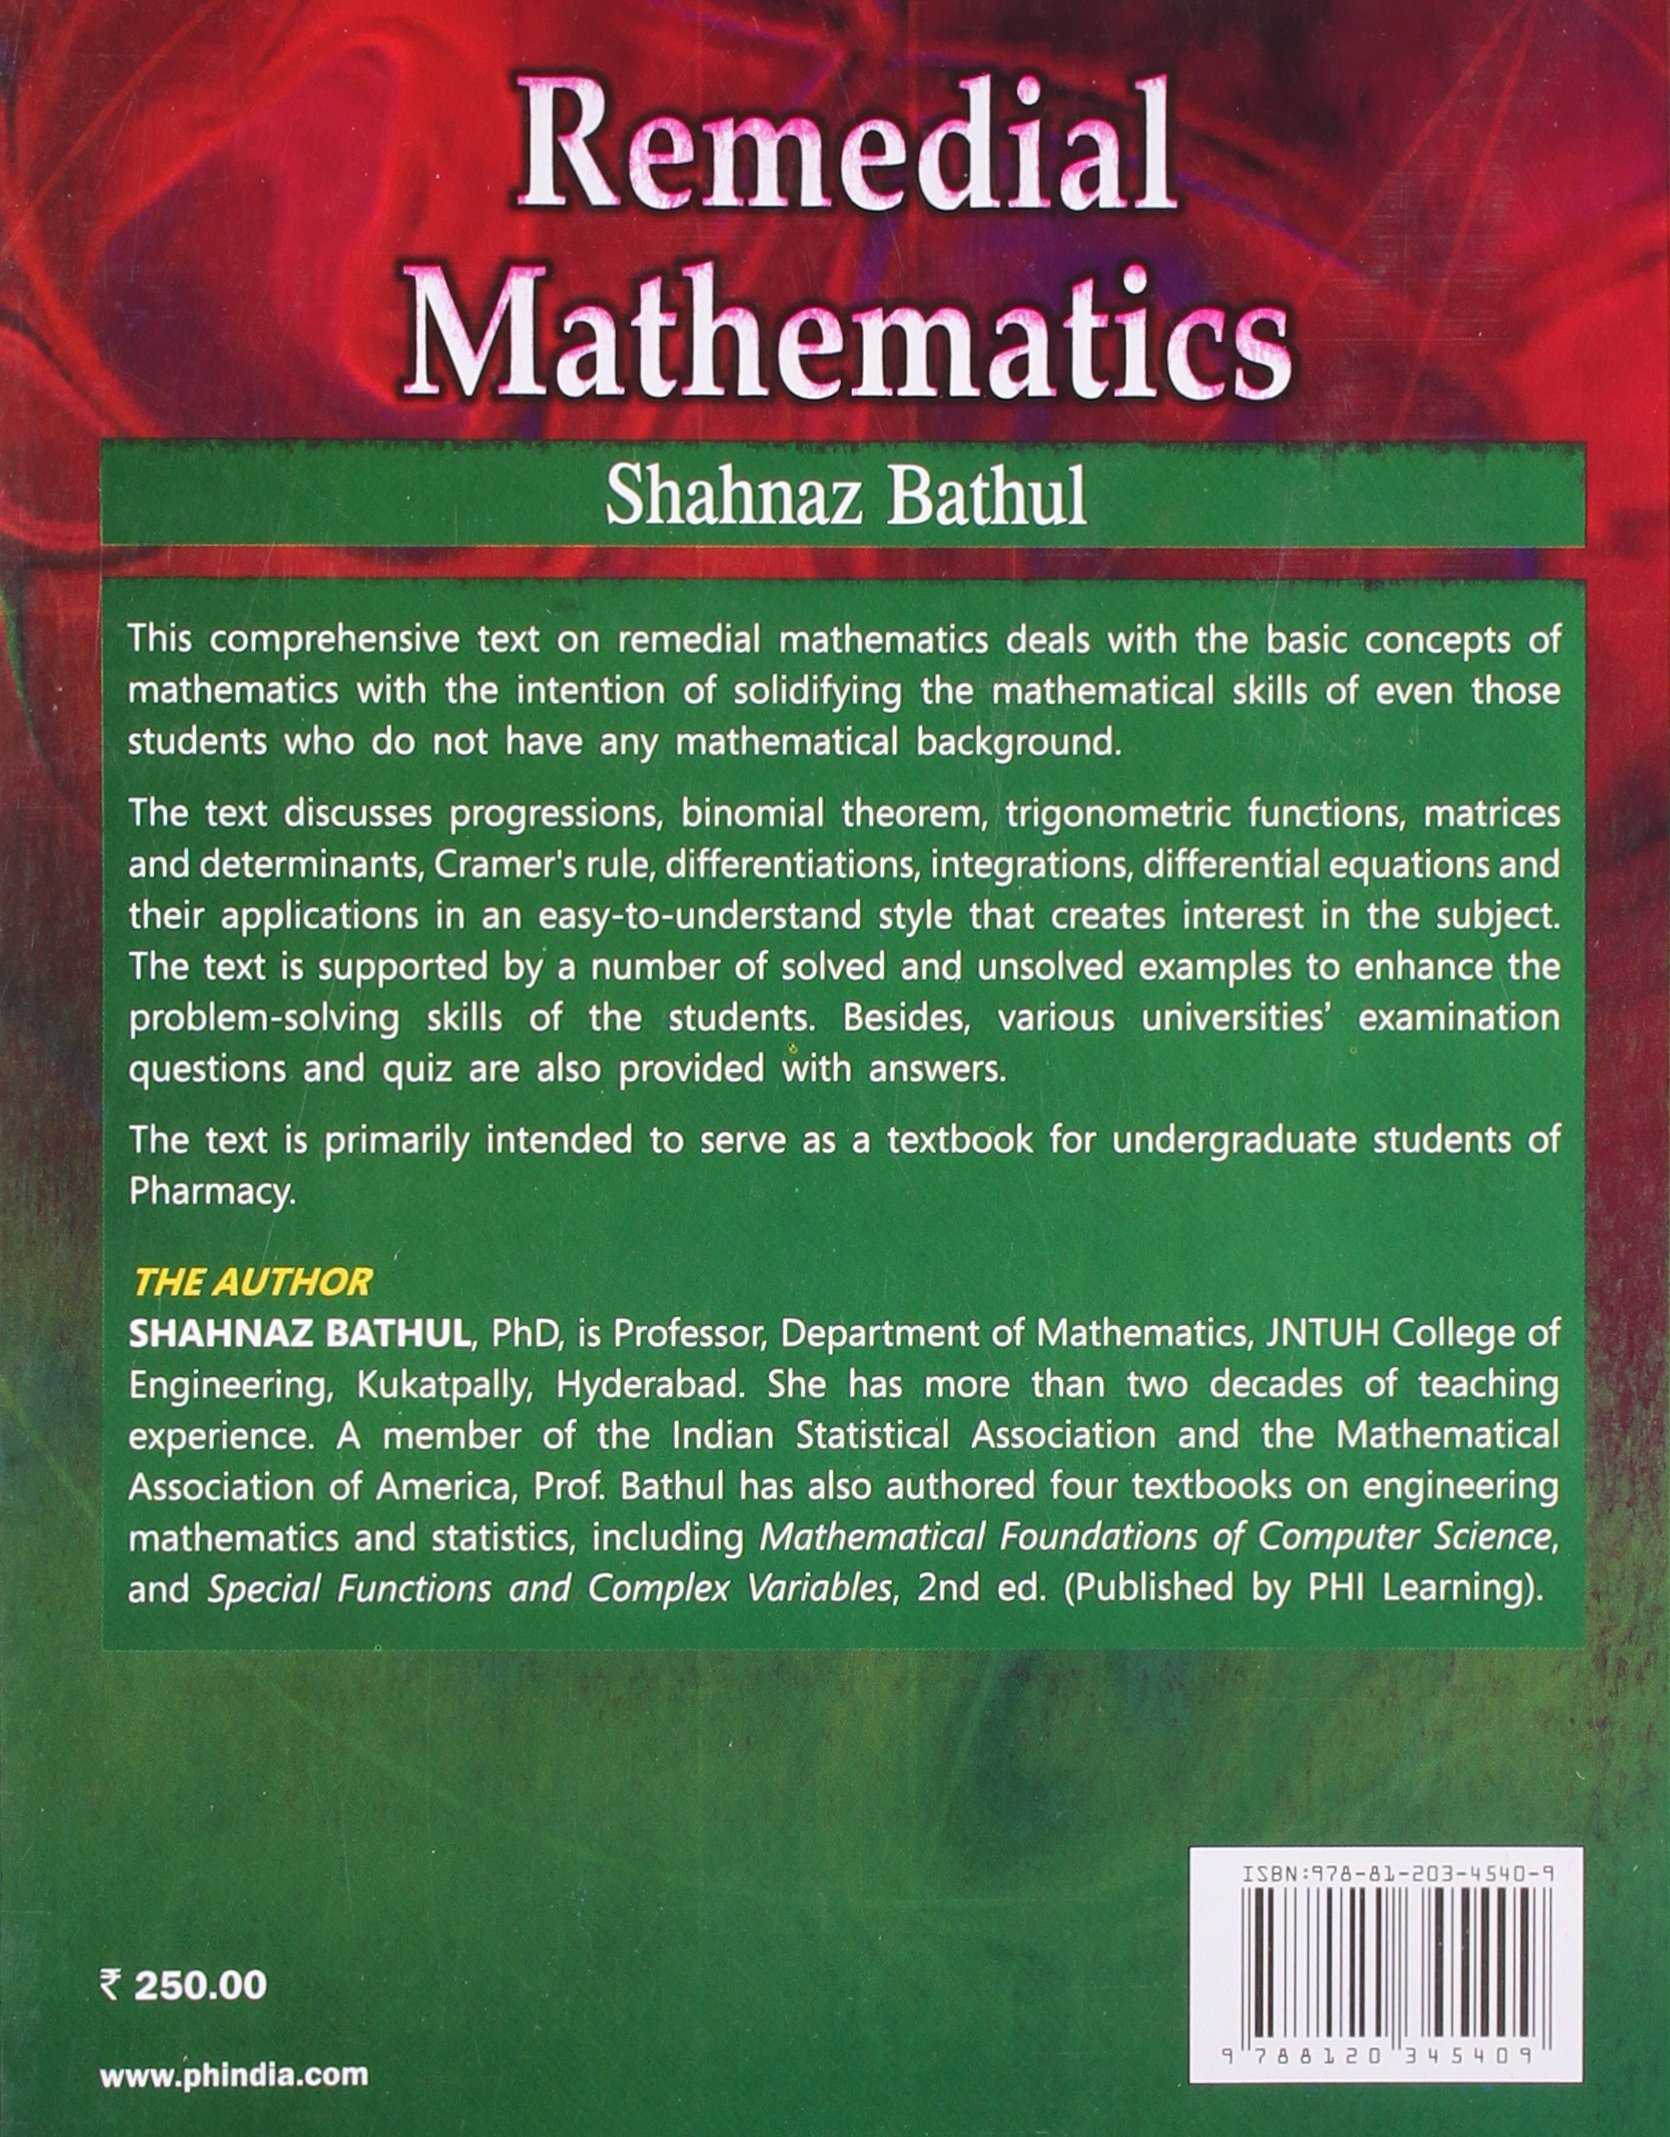 Buy Remedial Mathematics Book Online at Low Prices in India ...